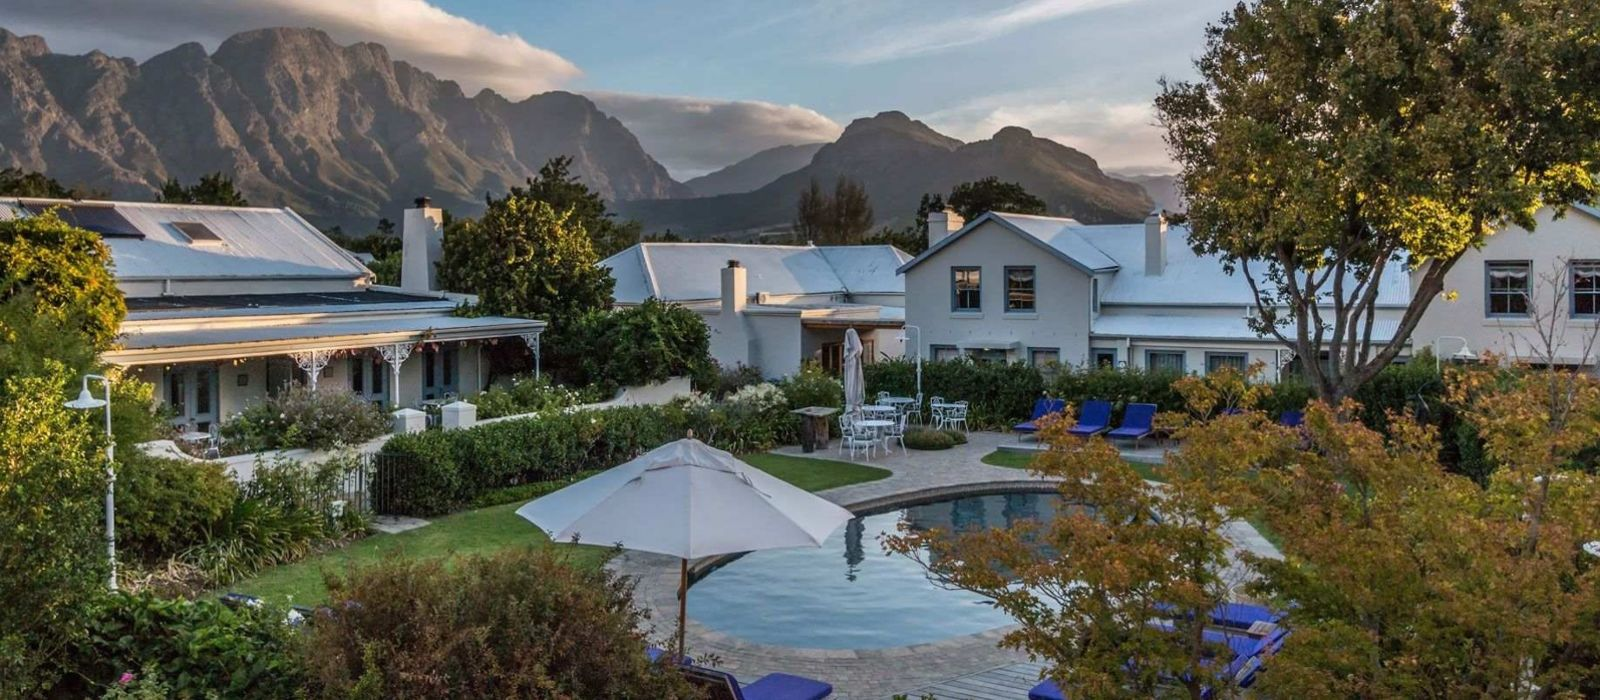 Dine with South Africa's Winemakers Tour Trip 4